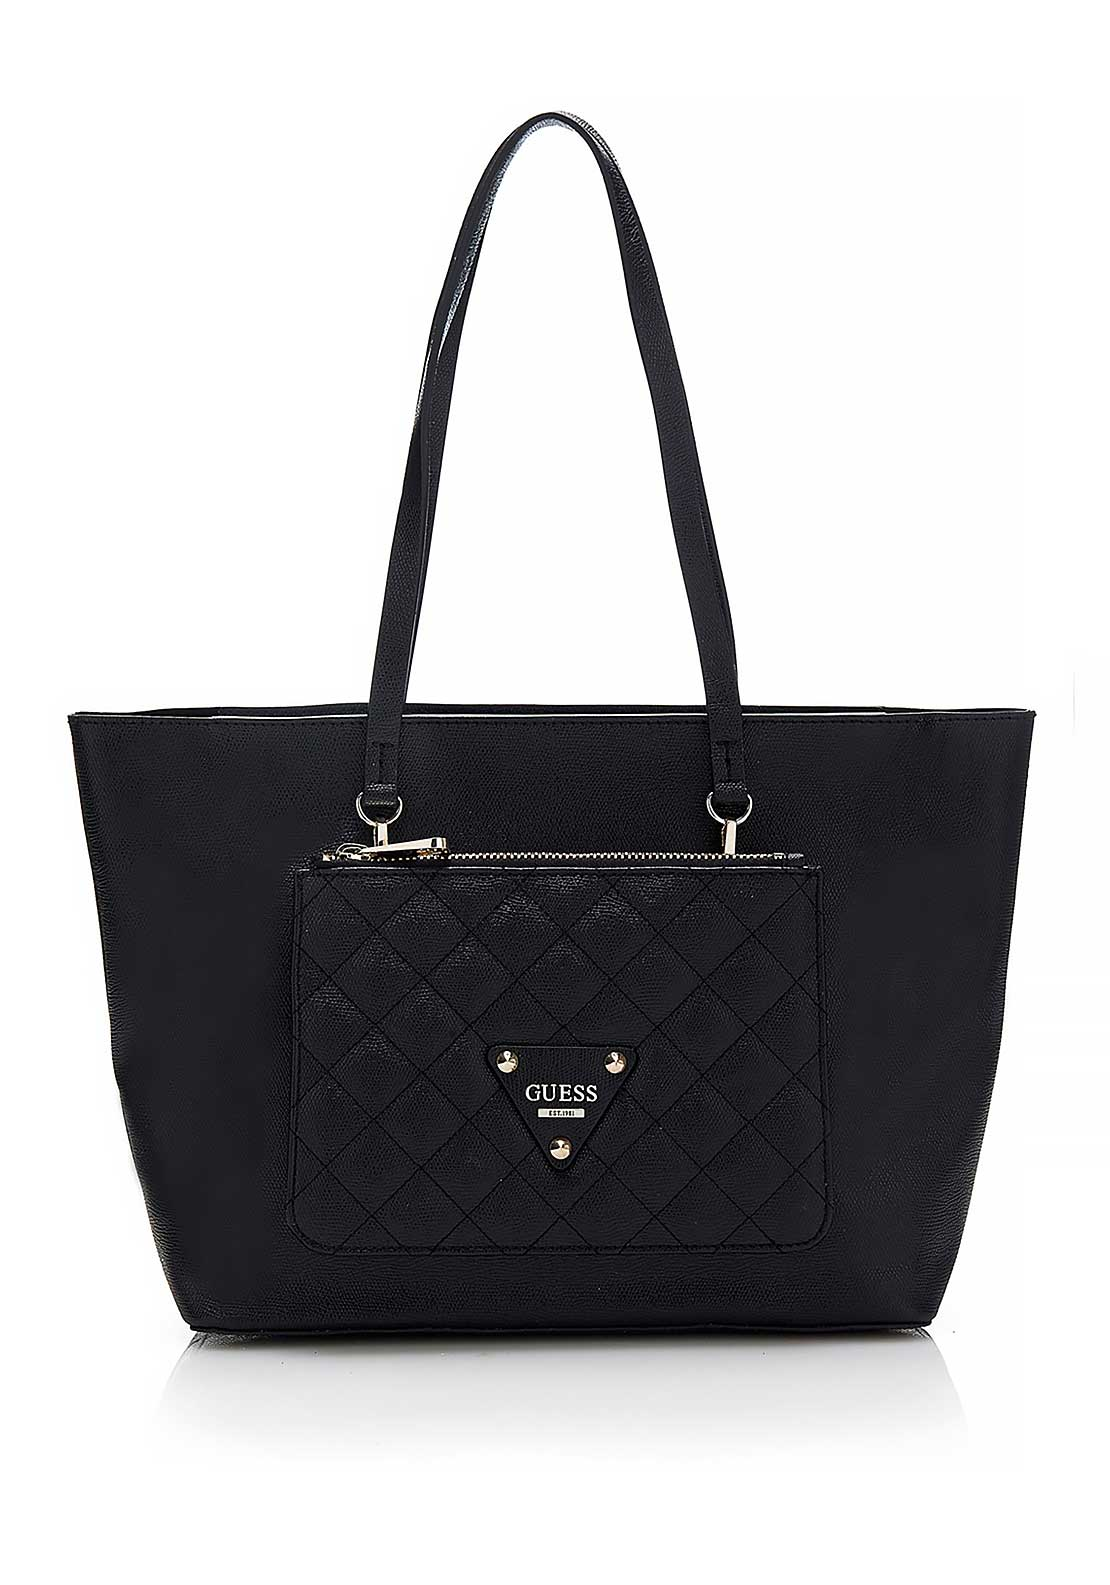 Guess Womens Faux Leather Audrey 2 in 1 Tote Bag, Black